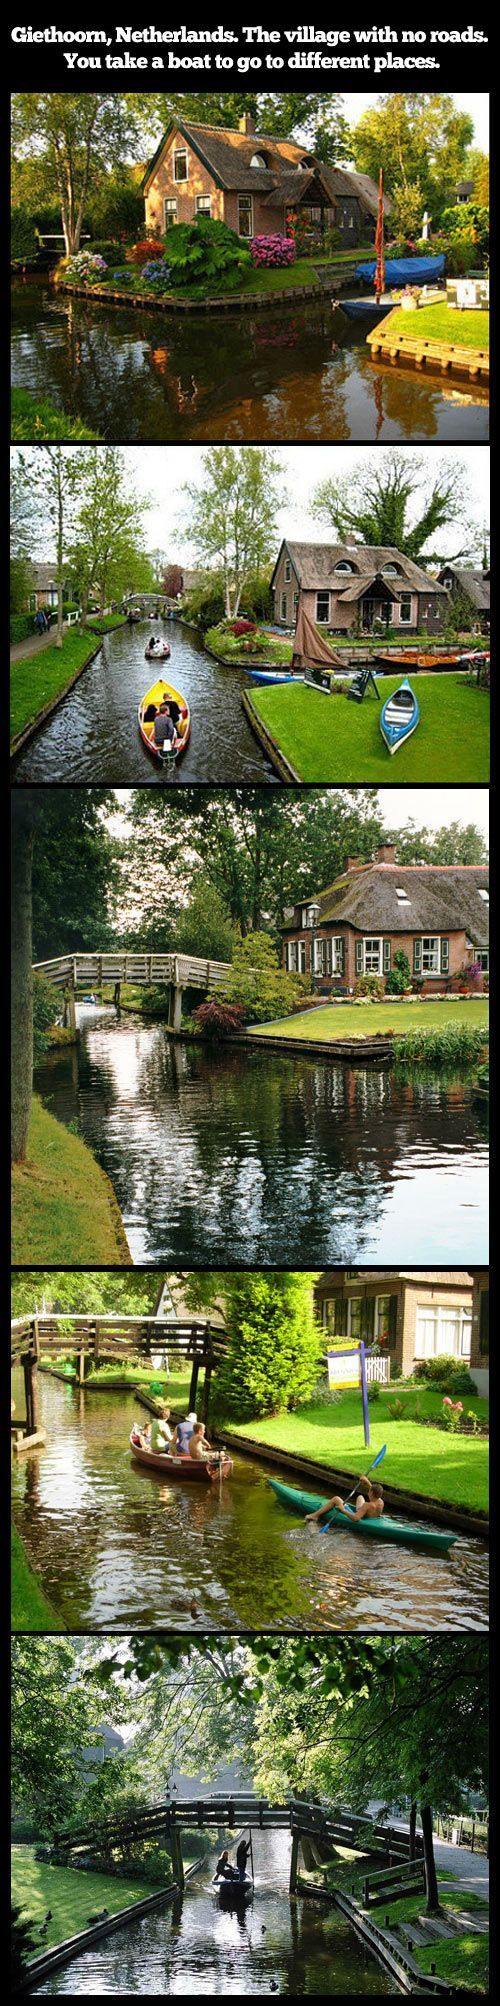 Bucket list!     Giethoorn, Netherlands: The village with no roads.  You take a boat to go todifferent places.